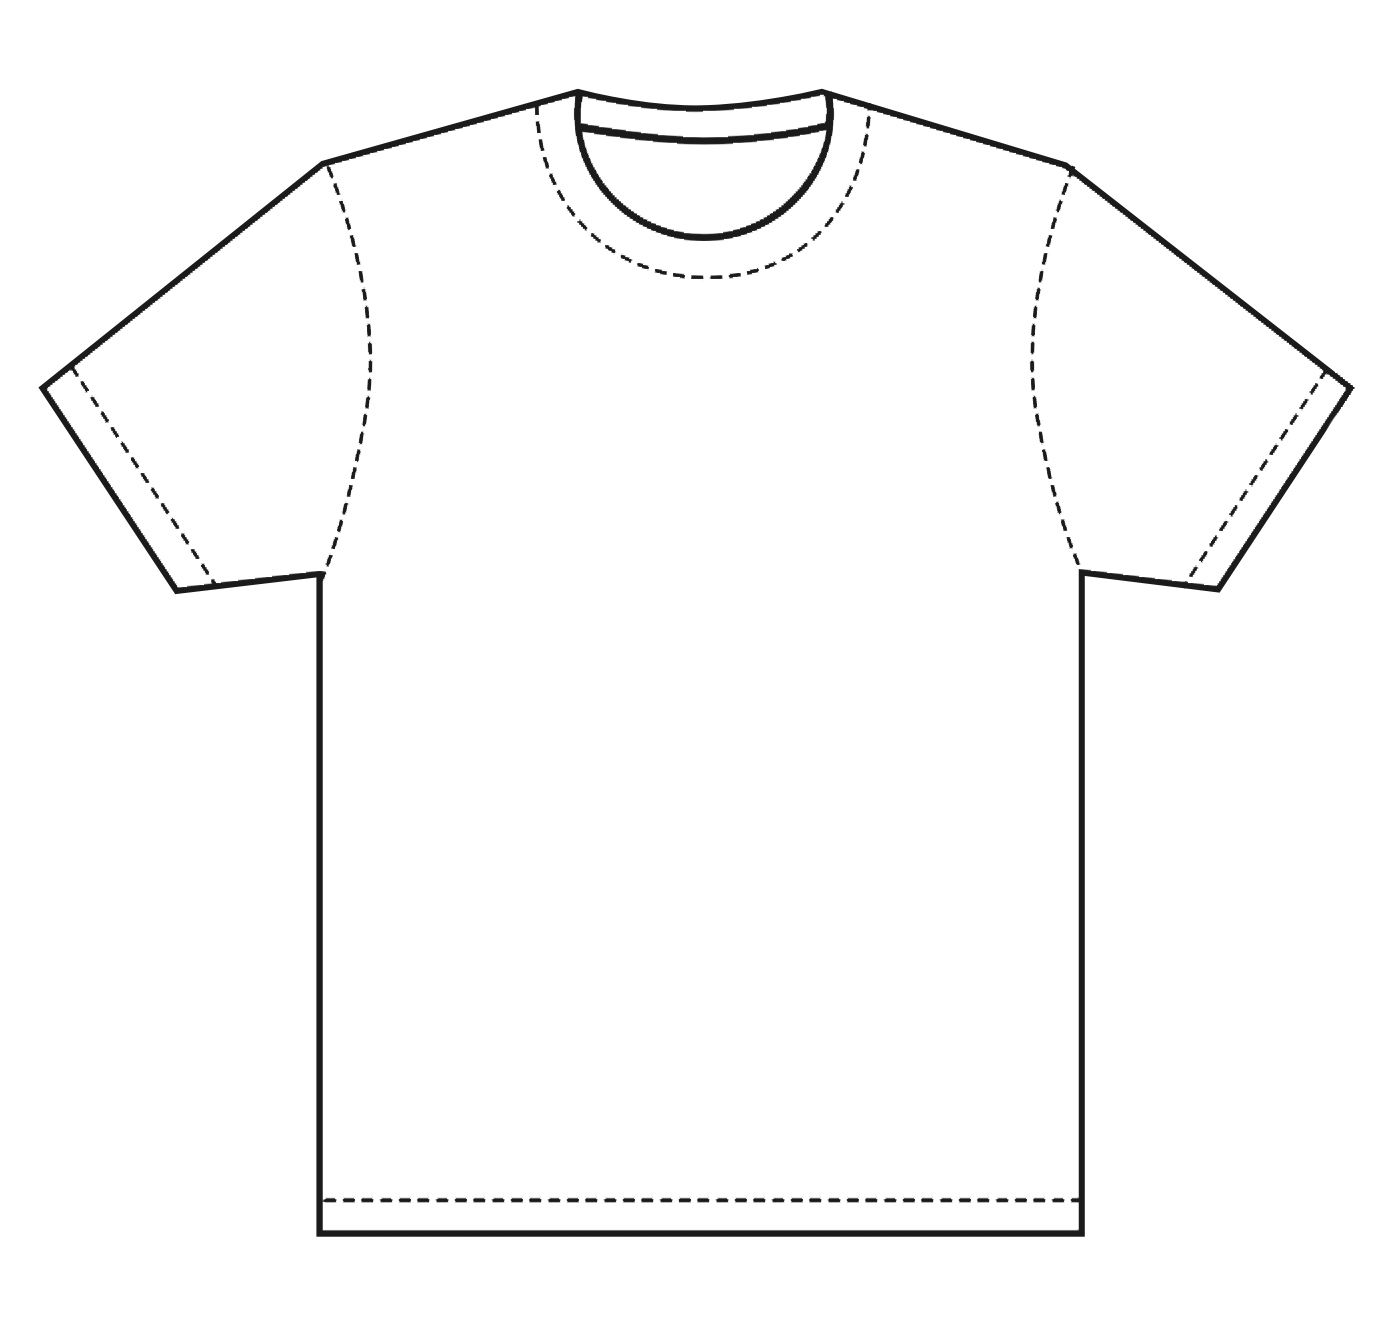 Design t shirt baseball - Design The Bisons To A T Shirt Contest